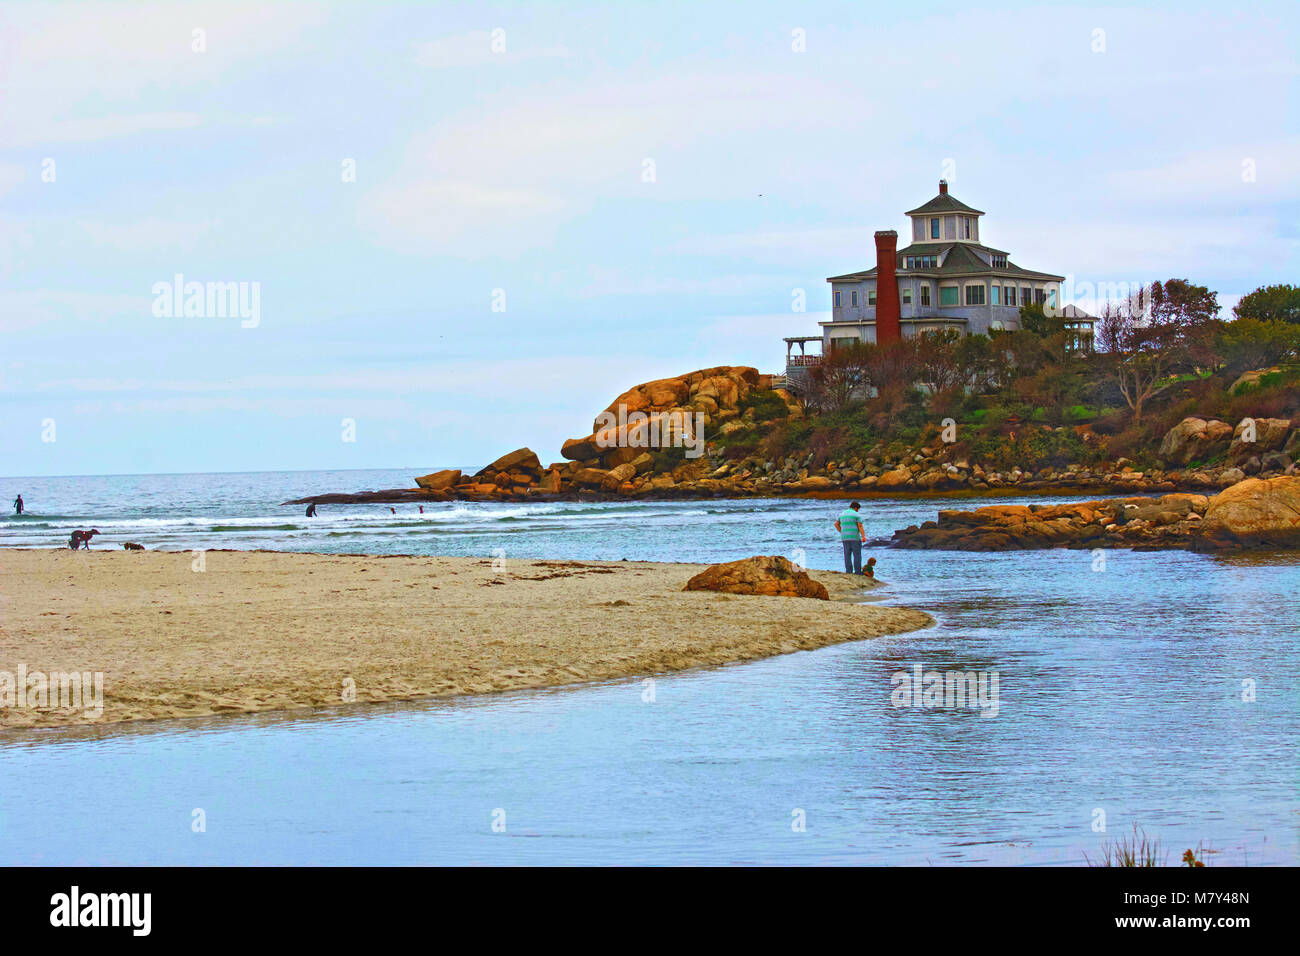 The tide shows off the rivers of water around the beach. - Stock Image